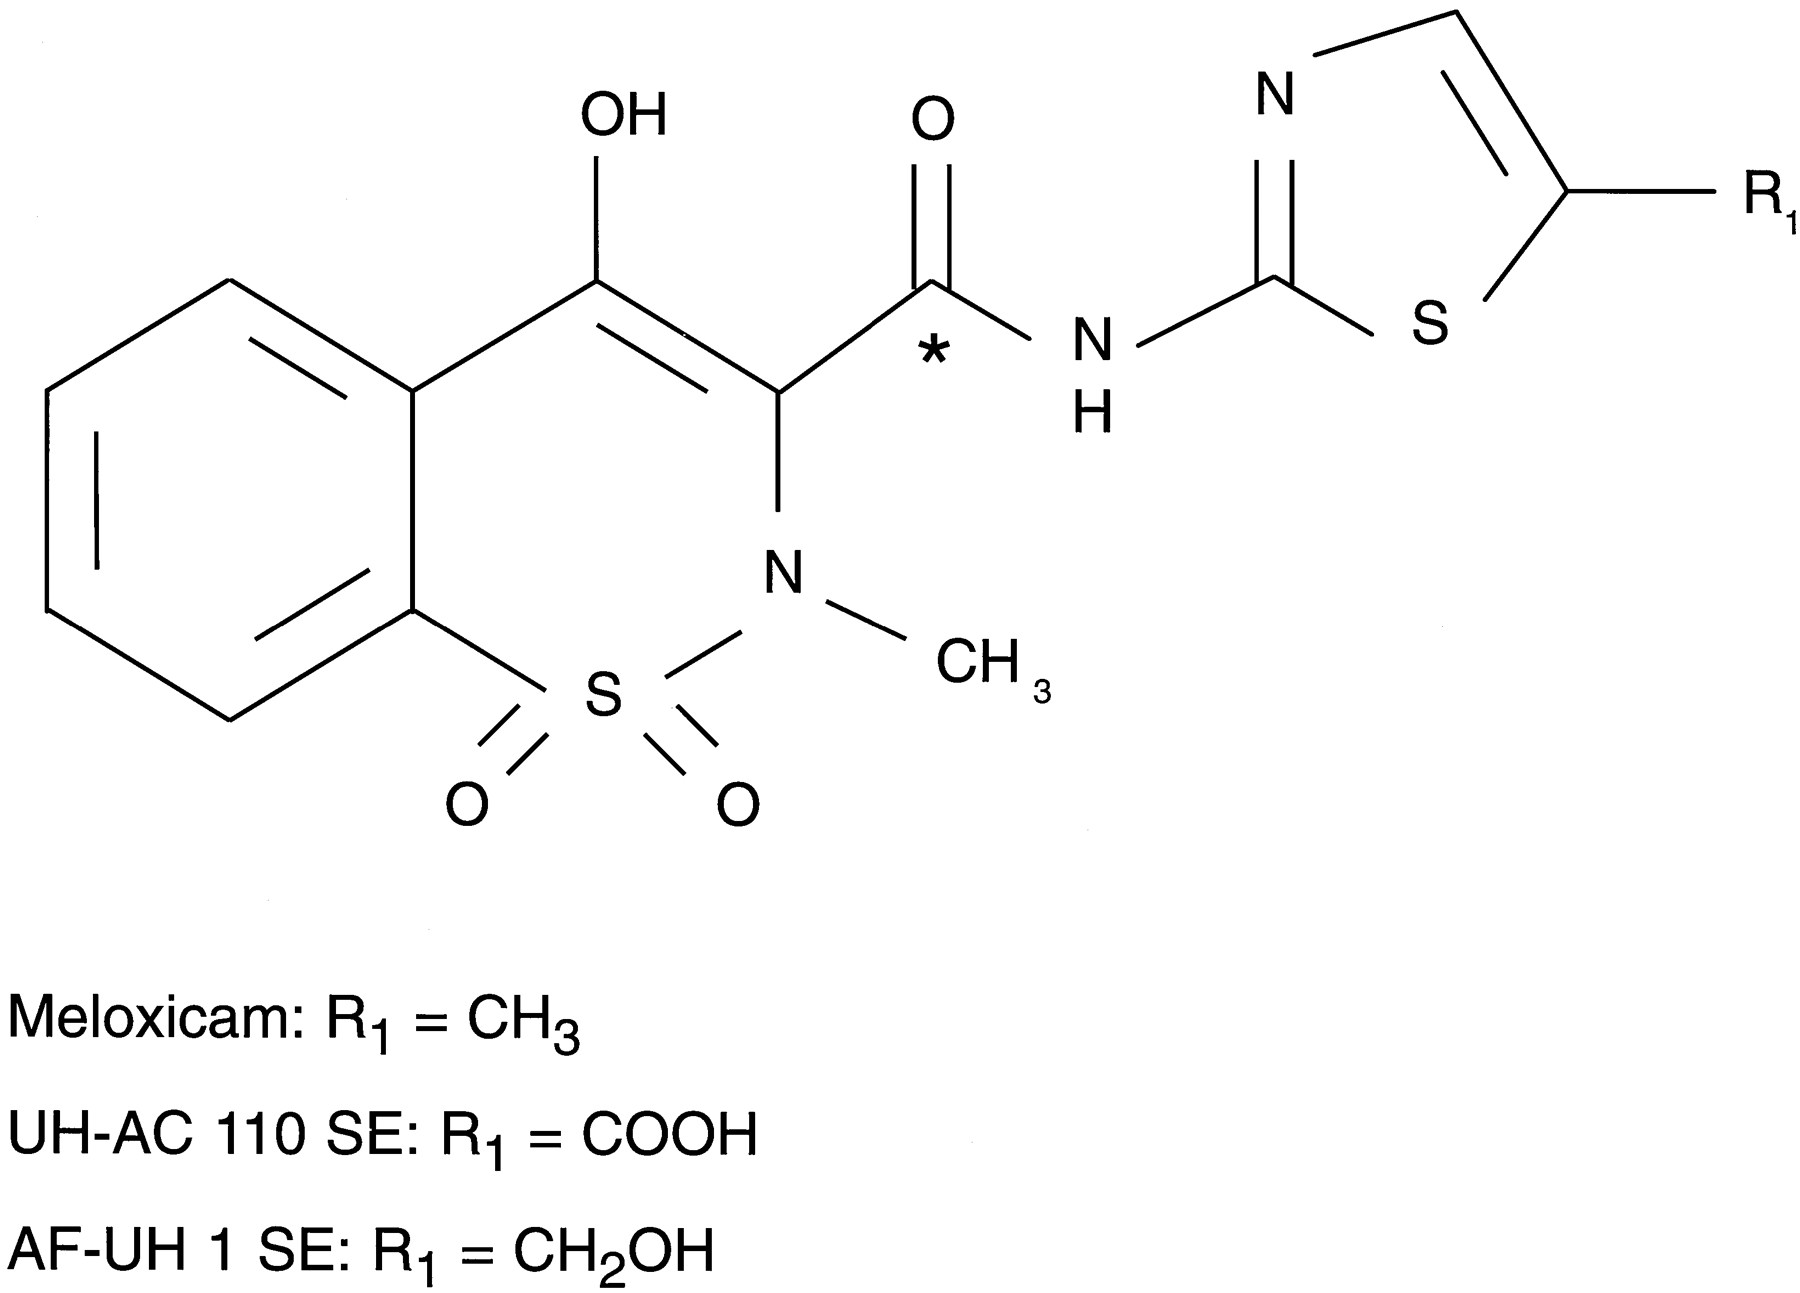 pharmacokinetics of meloxicam in animals and the relevance to